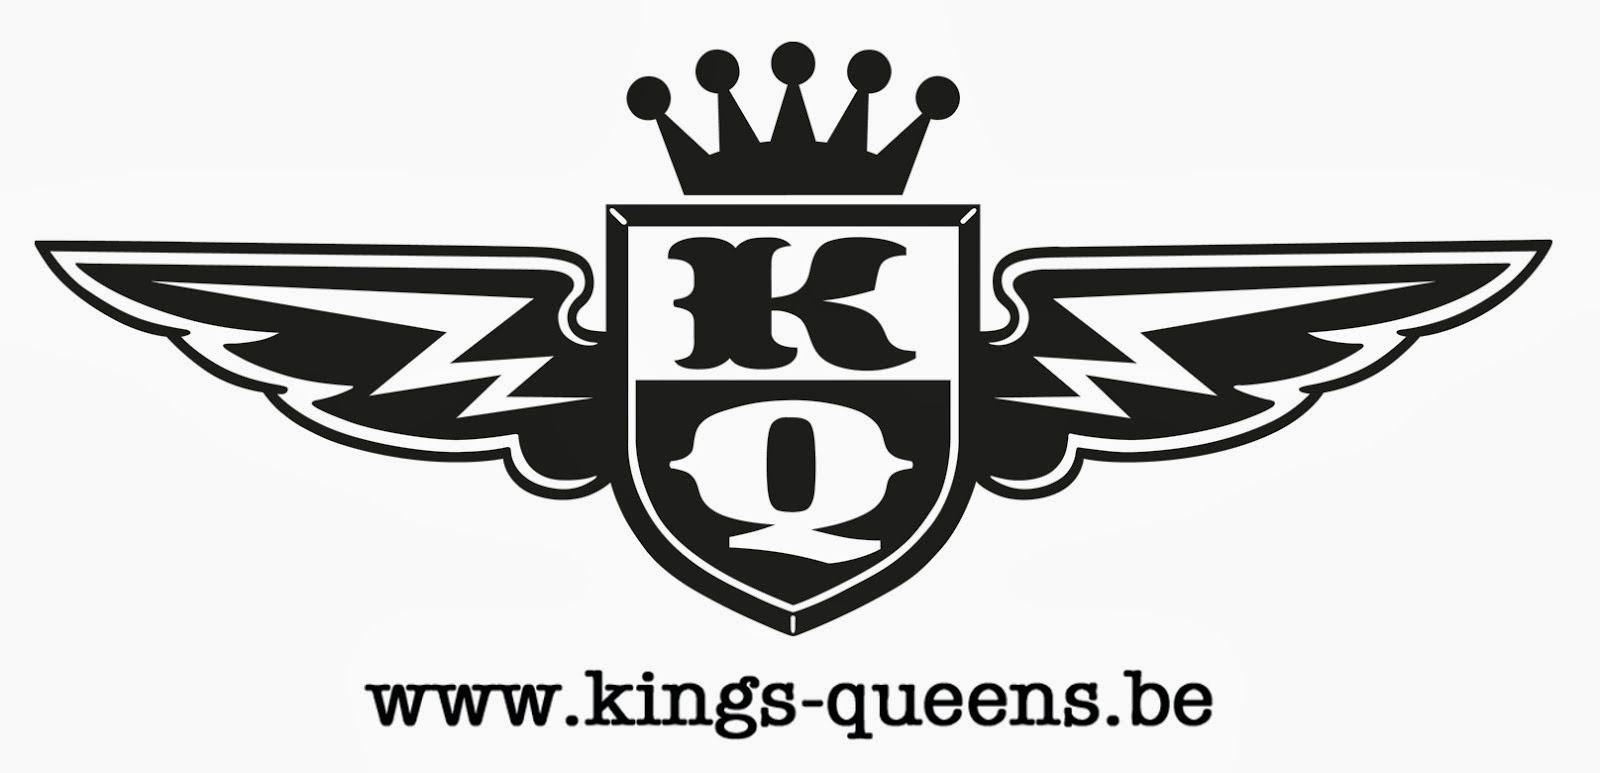 ~ Kings & Queens shop ~